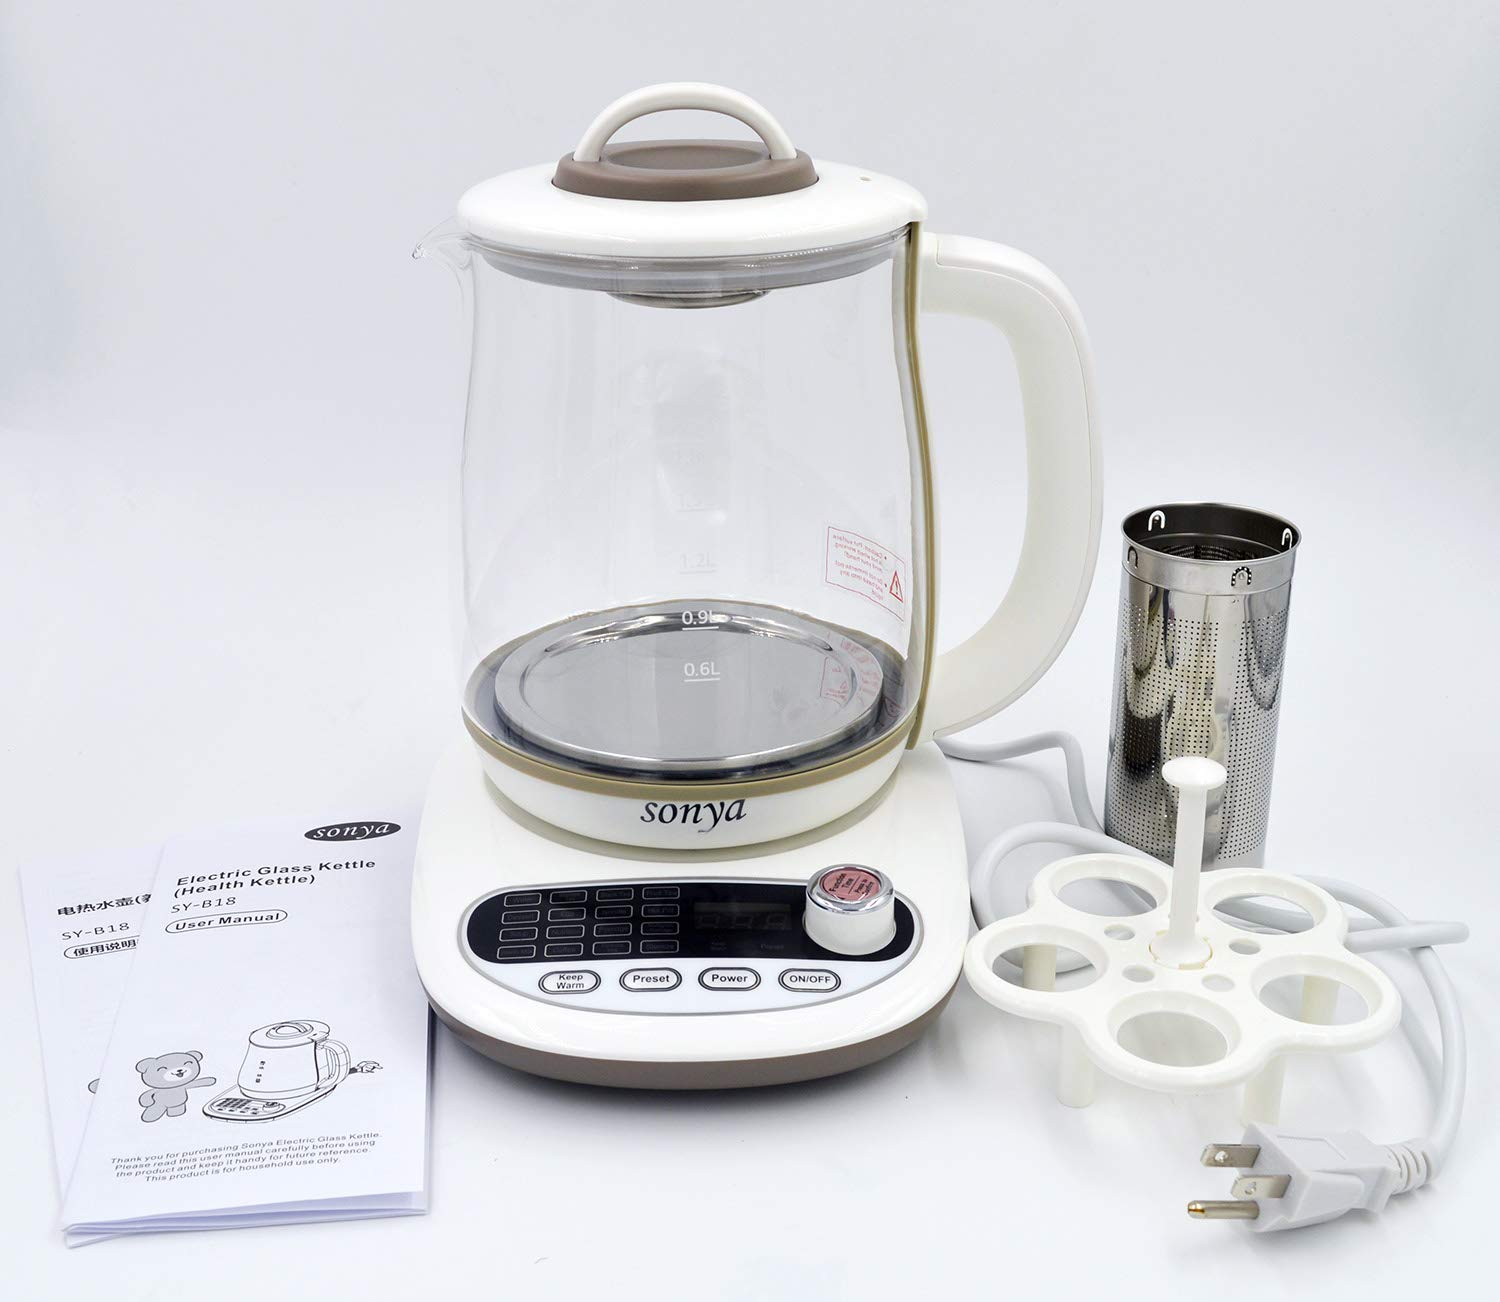 Sonya Multifunctional Electric Kettle Health Pot Tea Infuser SY-B18